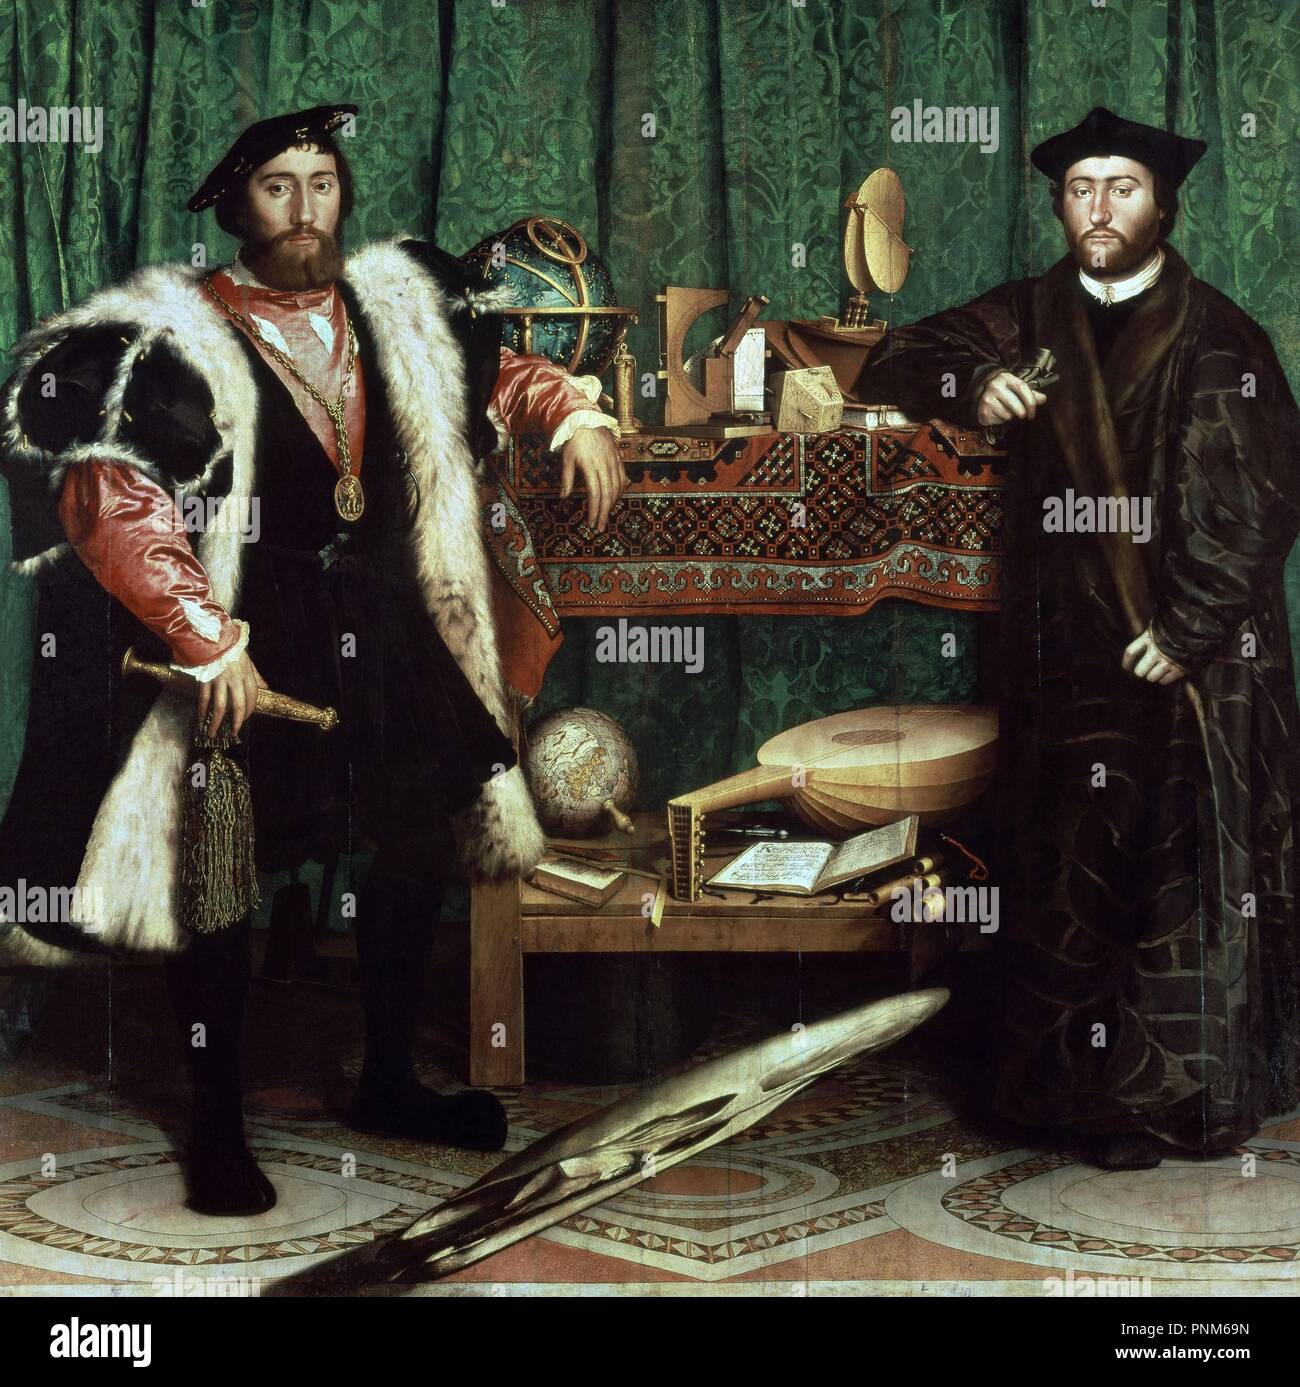 Germany school. The Ambassadors (with anamorphosis in the lower part of the painting). 1533. Oil on oak (209 x 207 cm). London, National Gallery. Author: Holbein the Younger, Hans. Location: NATIONAL GALLERY. LONDON. ENGLAND. Stock Photo